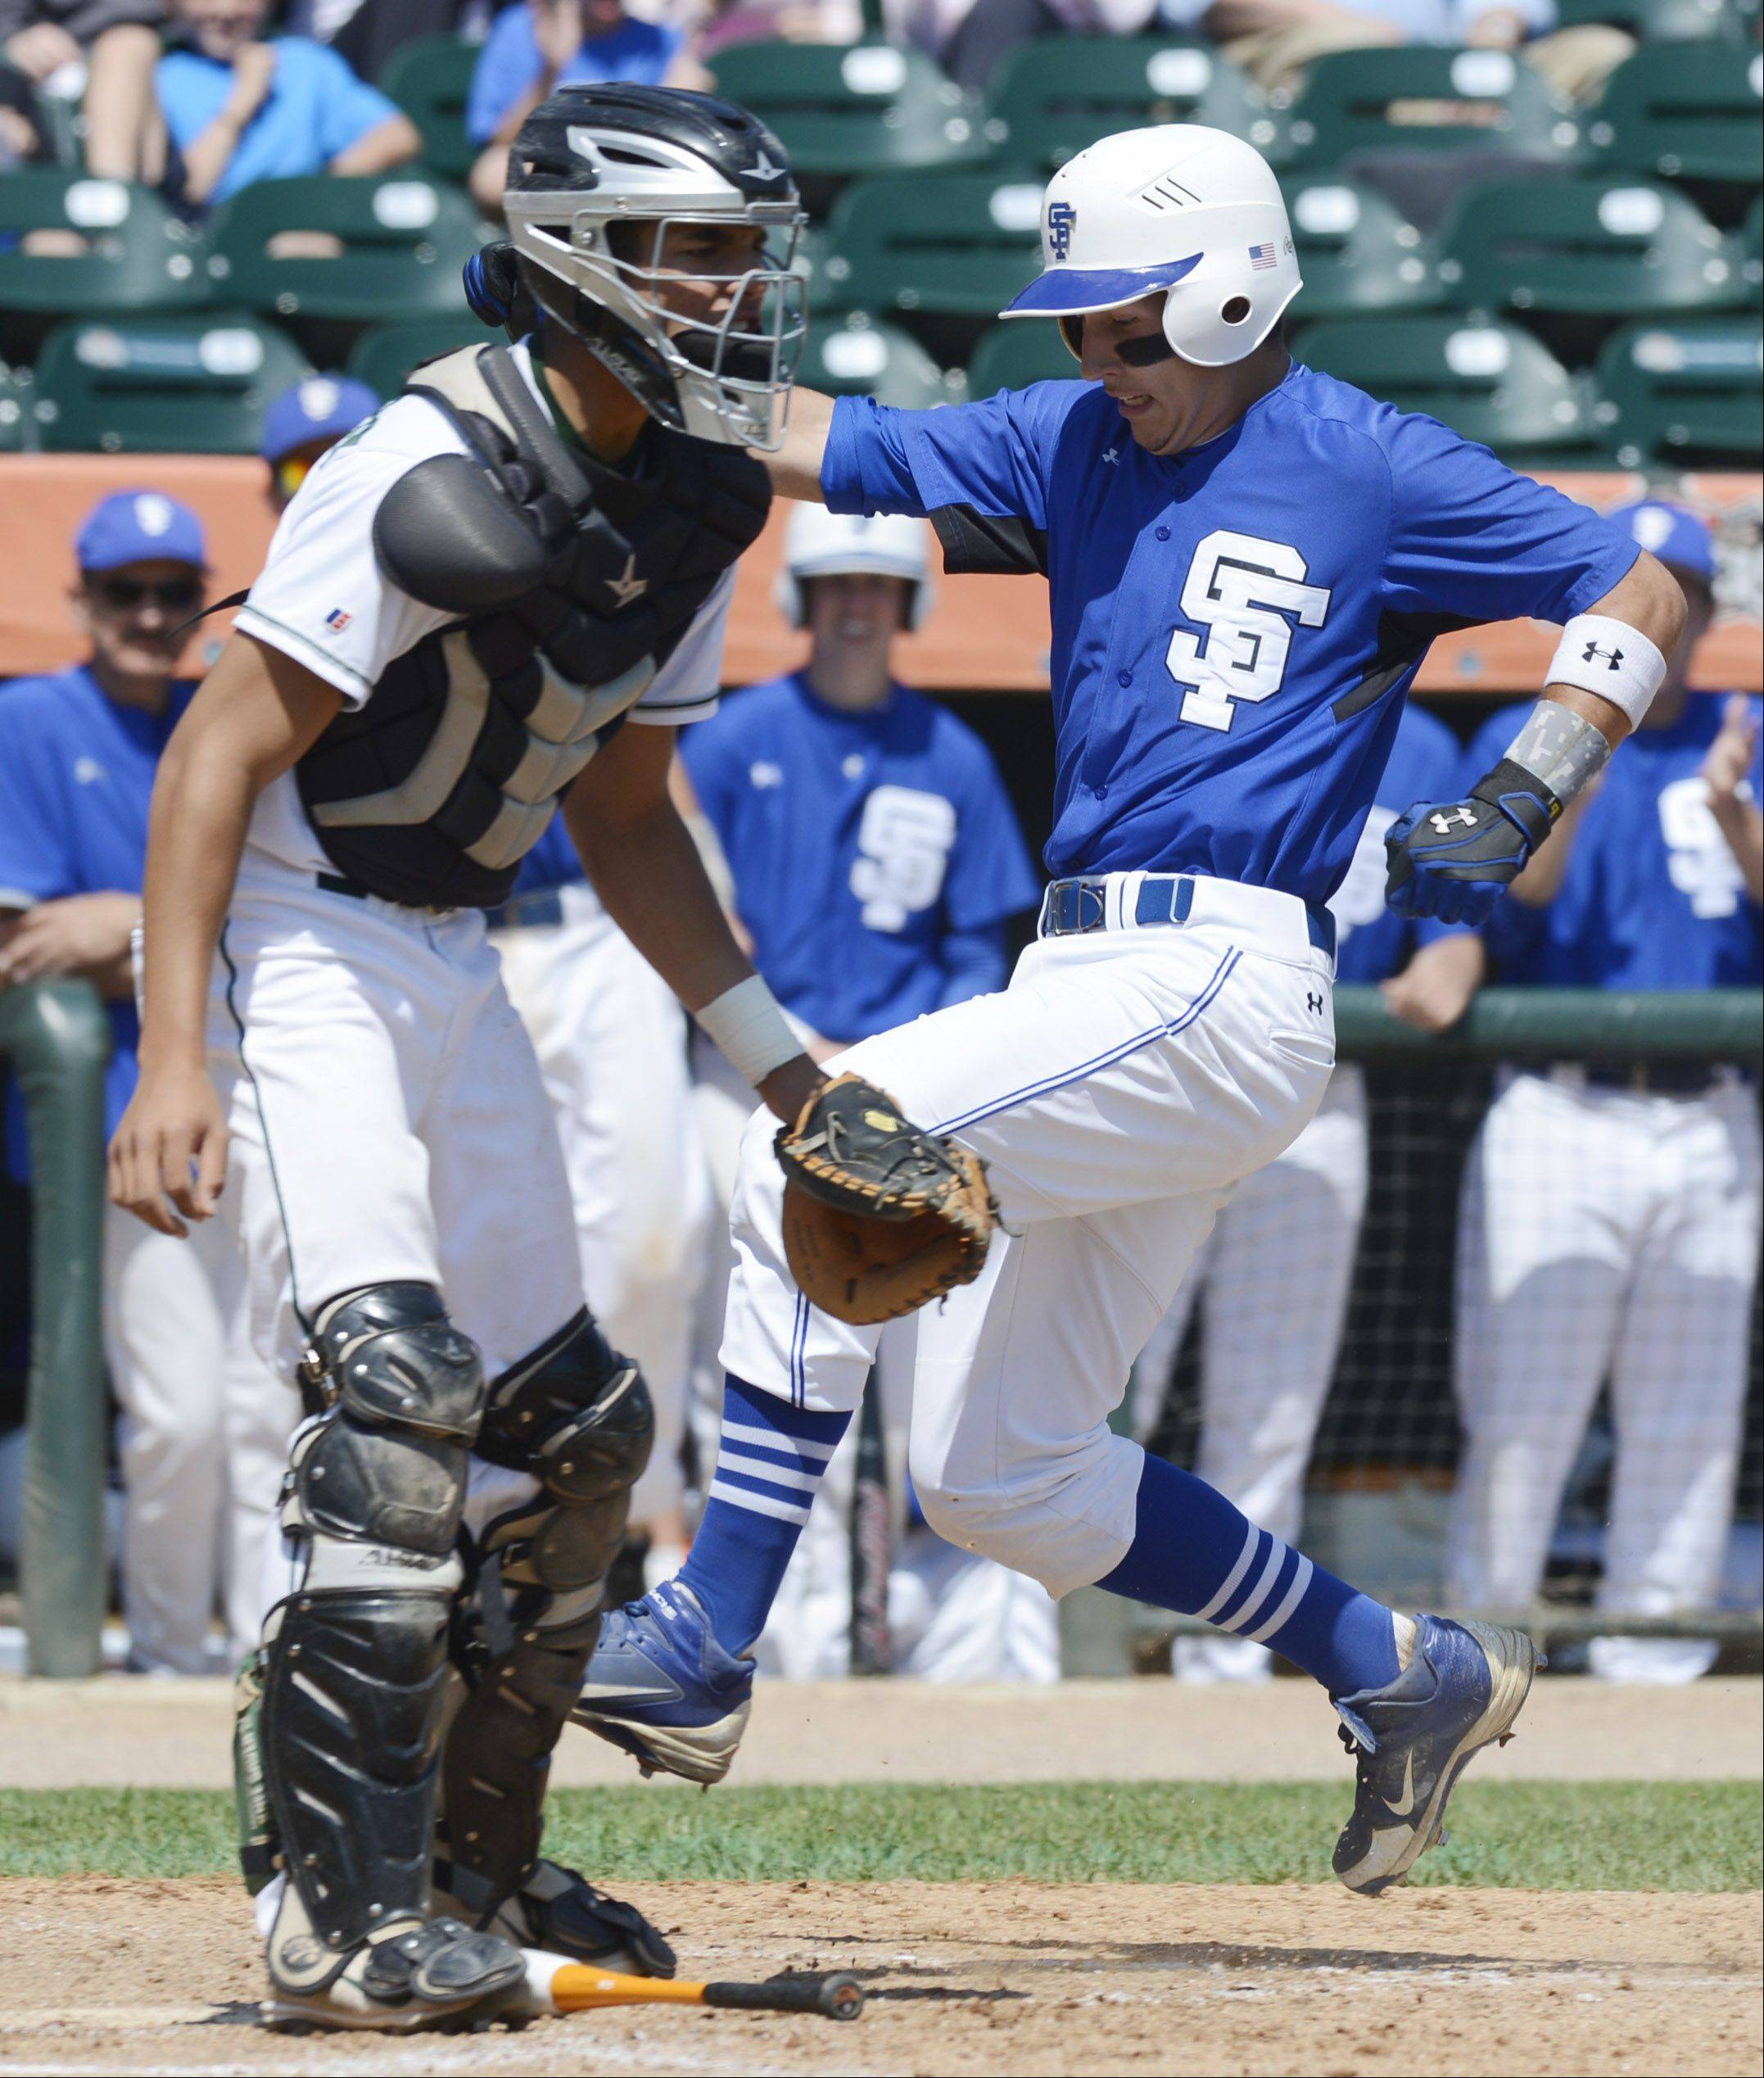 Joe Croci of St. Francis runs past Grayslake Central catcher Freddie Landers as her scores during the Class 3A state baseball semifinal at Silver Cross Field in Joliet Friday.